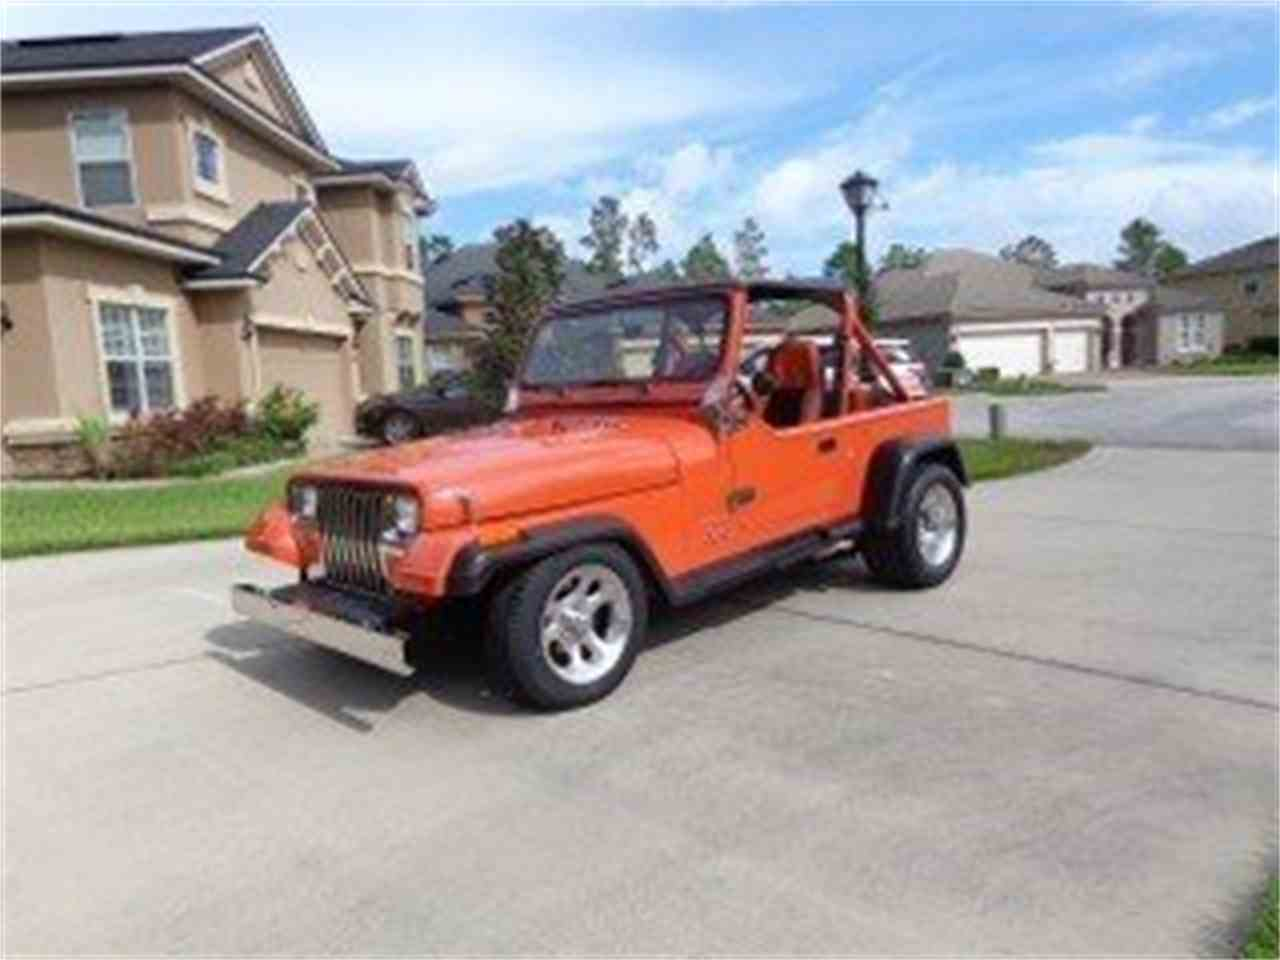 austin com granbury troy gmail texas auto wrangler dealer sale rubicon for dfw young in tires red has texascardeal deal jeep with miles only